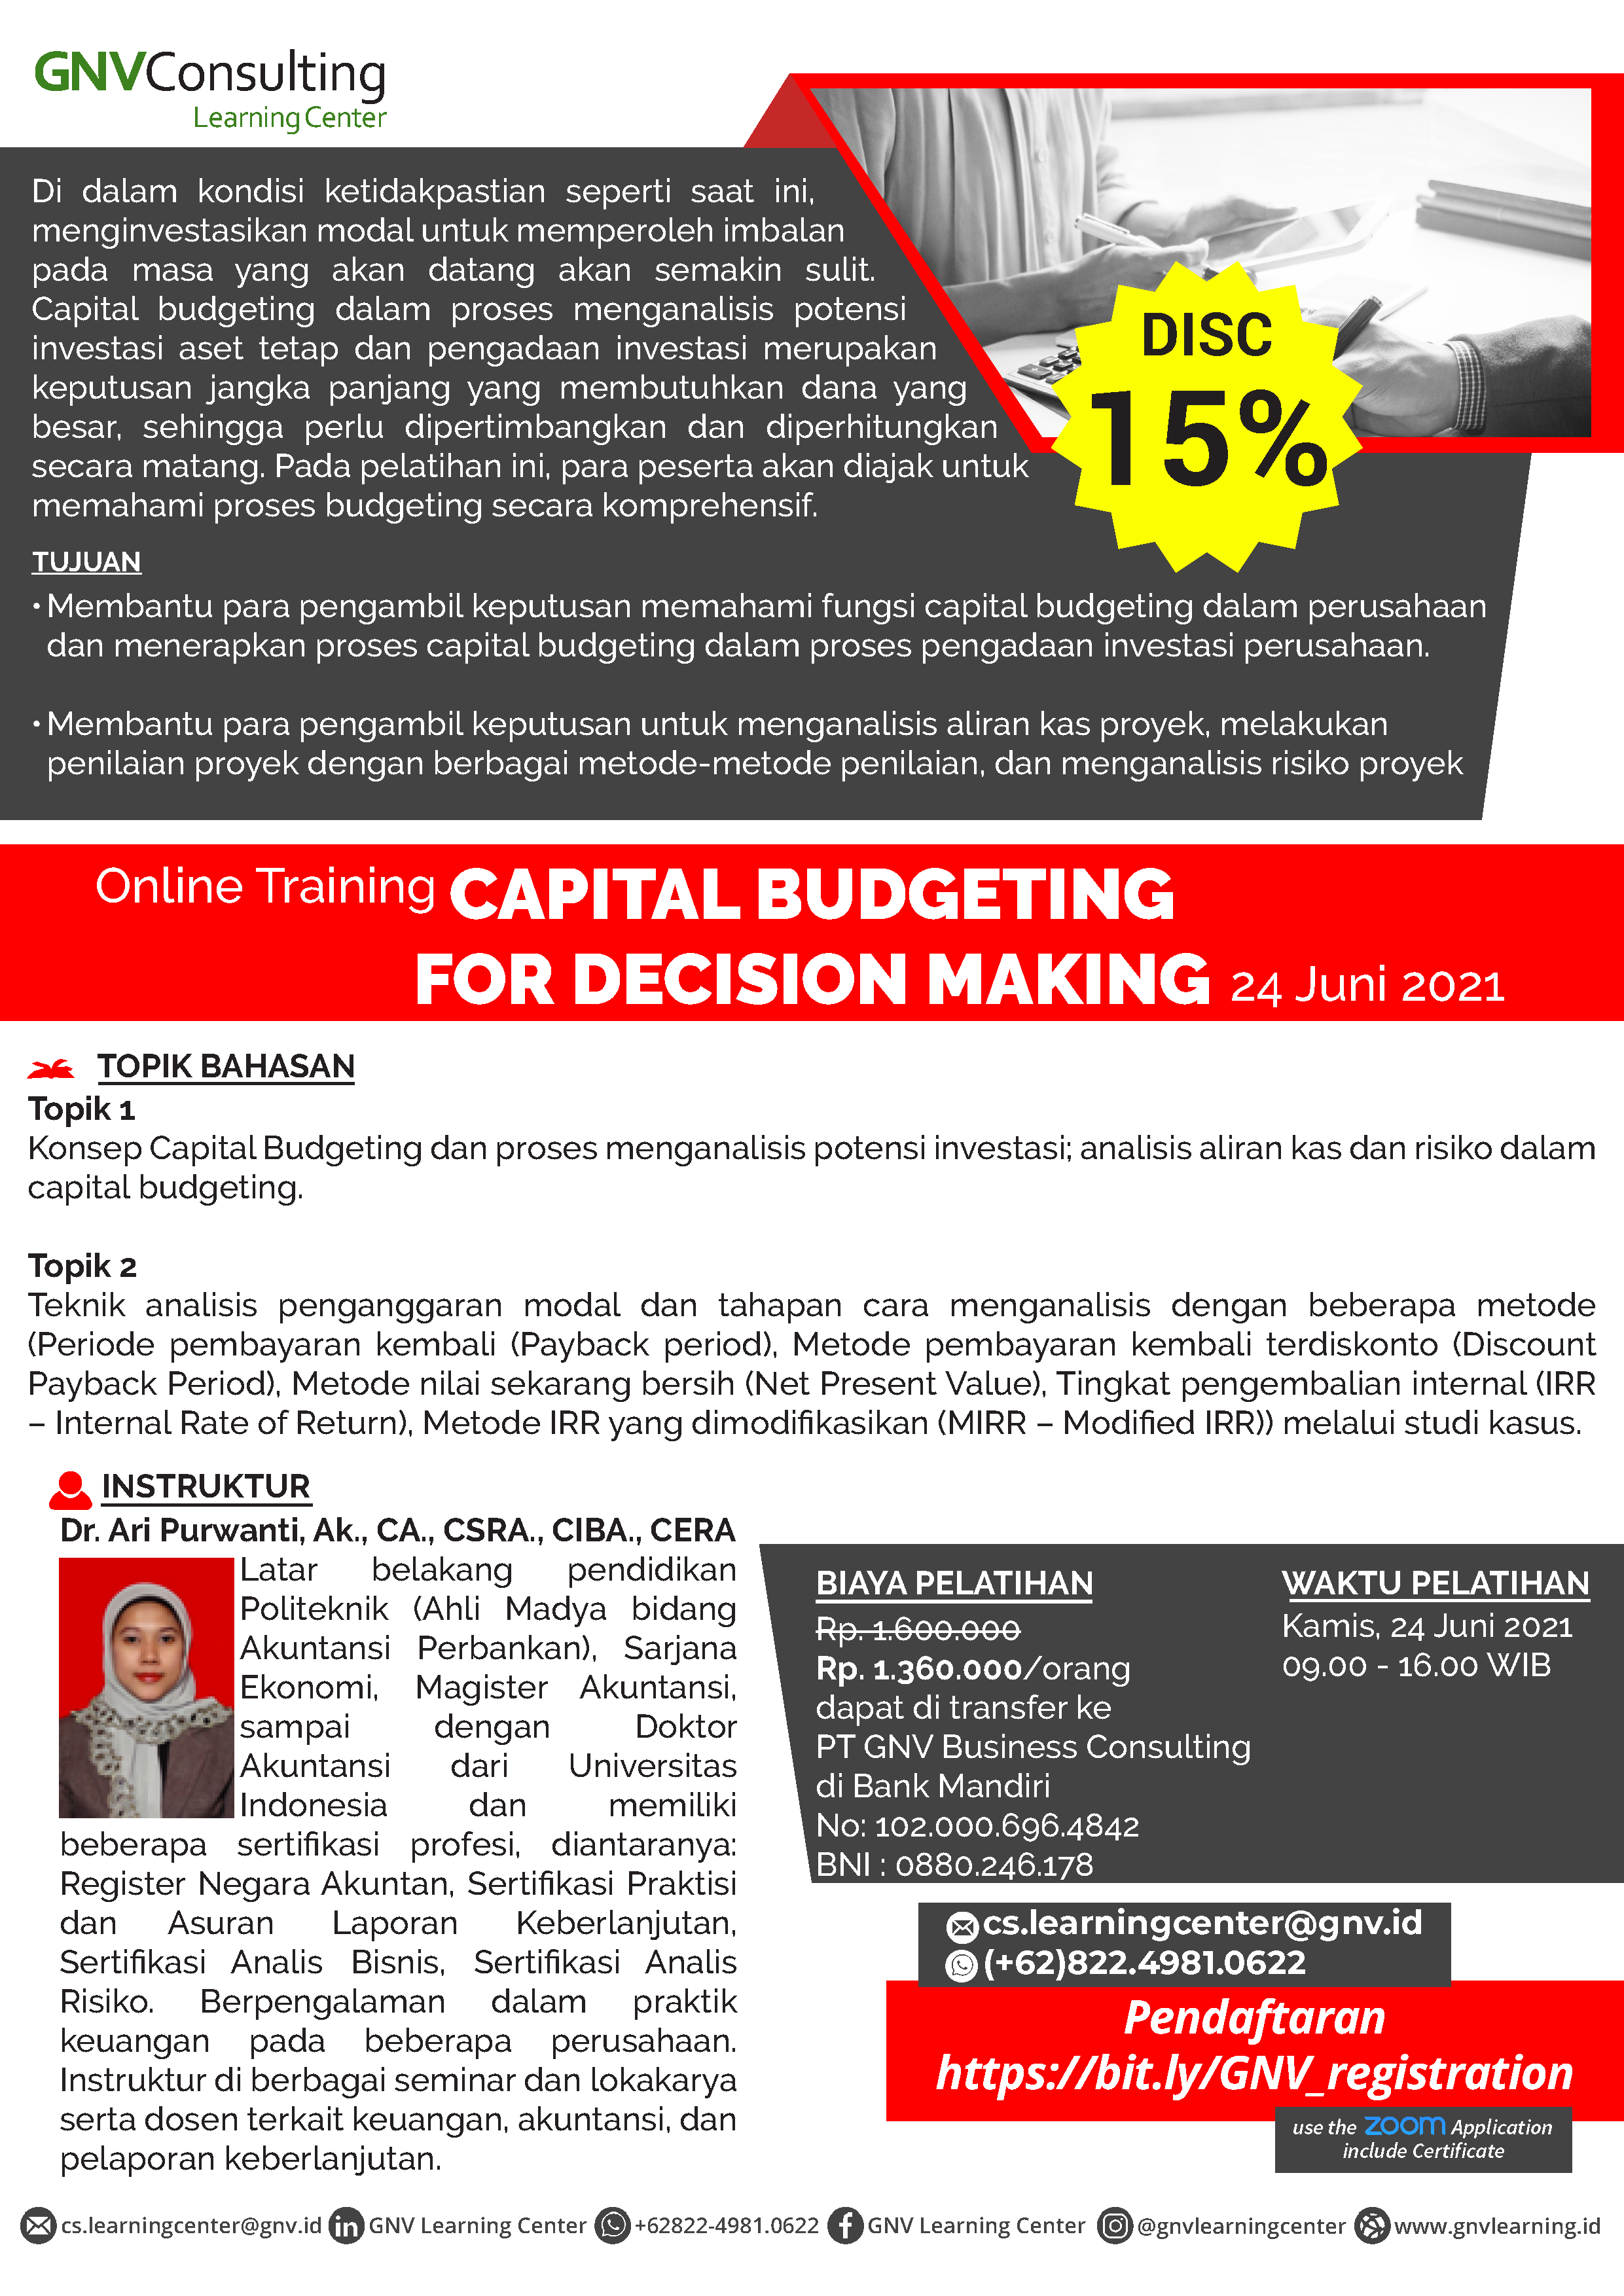 Capital Budgeting for Decision Making – Online Training